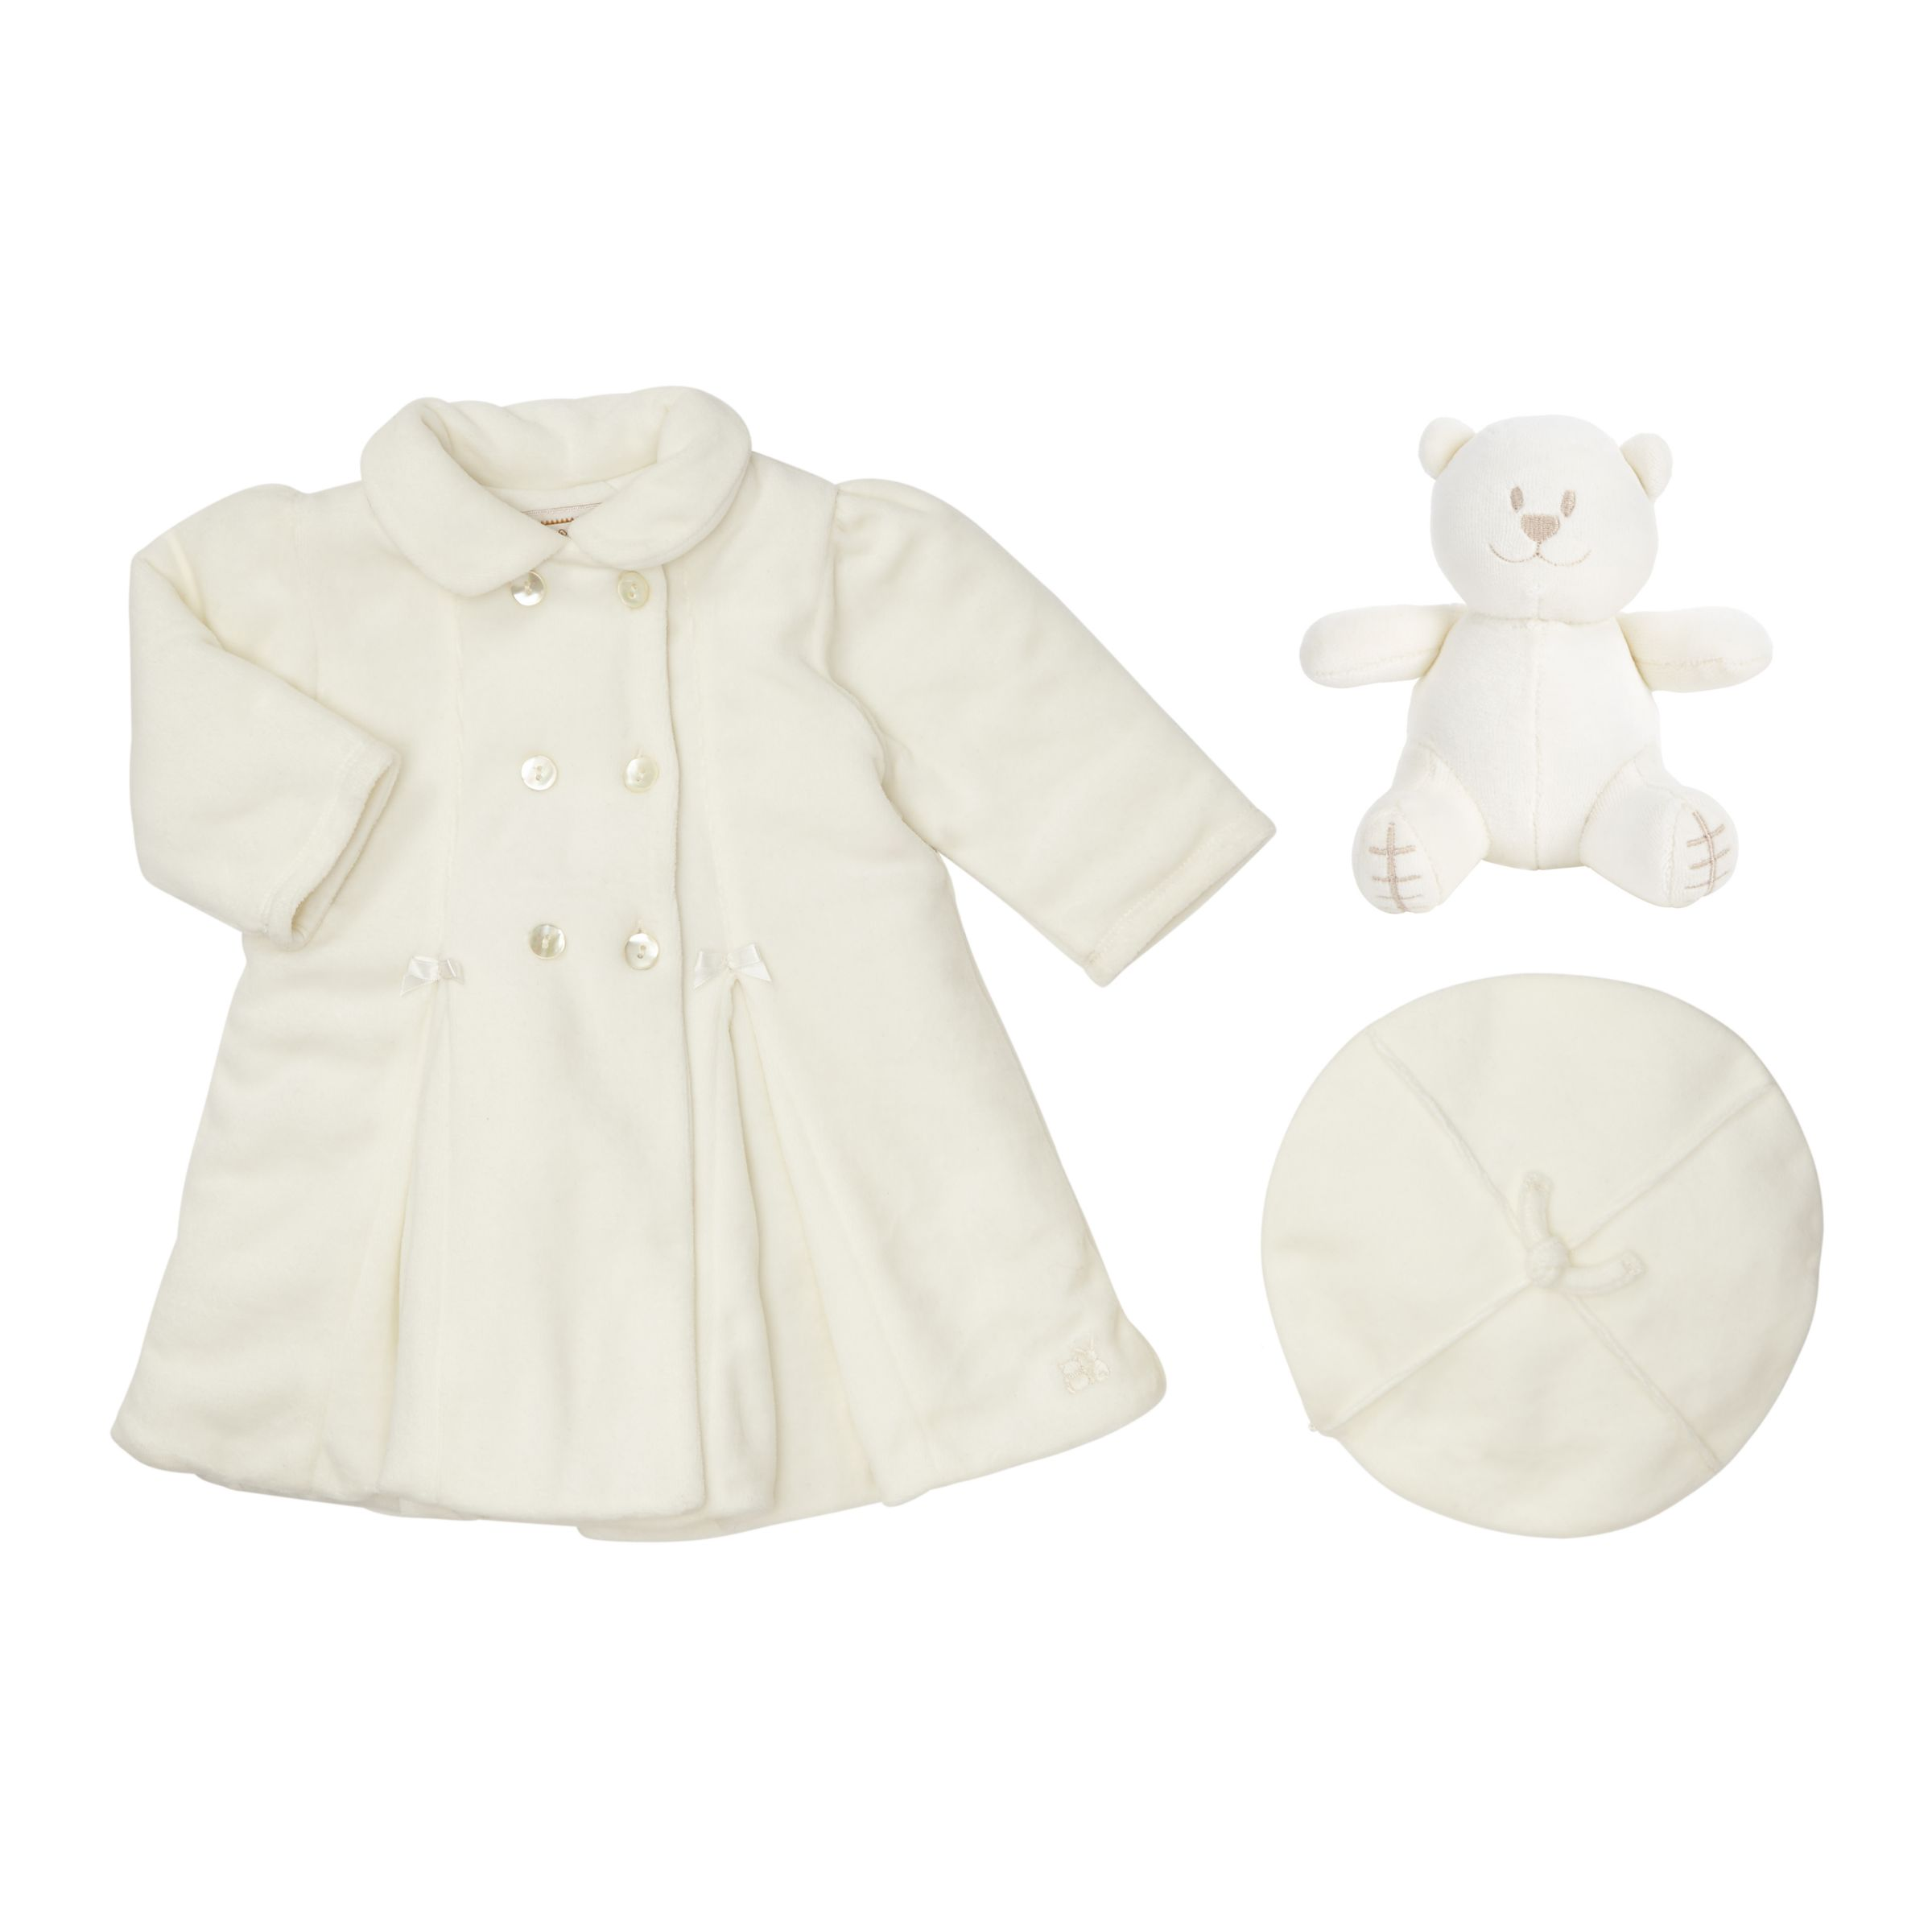 Emile et Rose Emile et Rose Baby Velour Coat and Hat